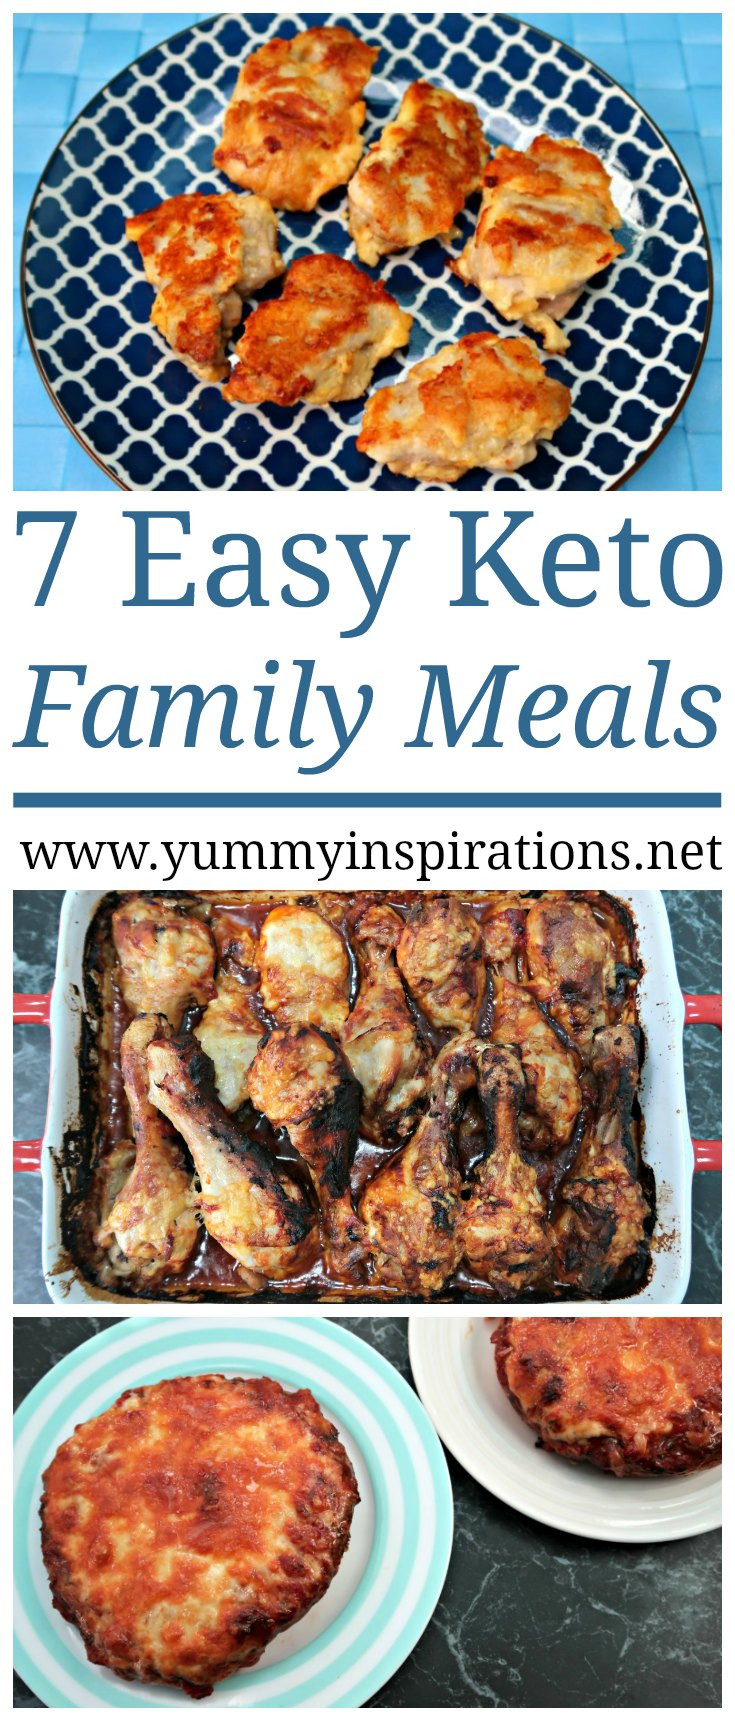 Keto Dinner Recipes Easy Family  7 Keto Family Meals How to follow the Ketogenic Diet